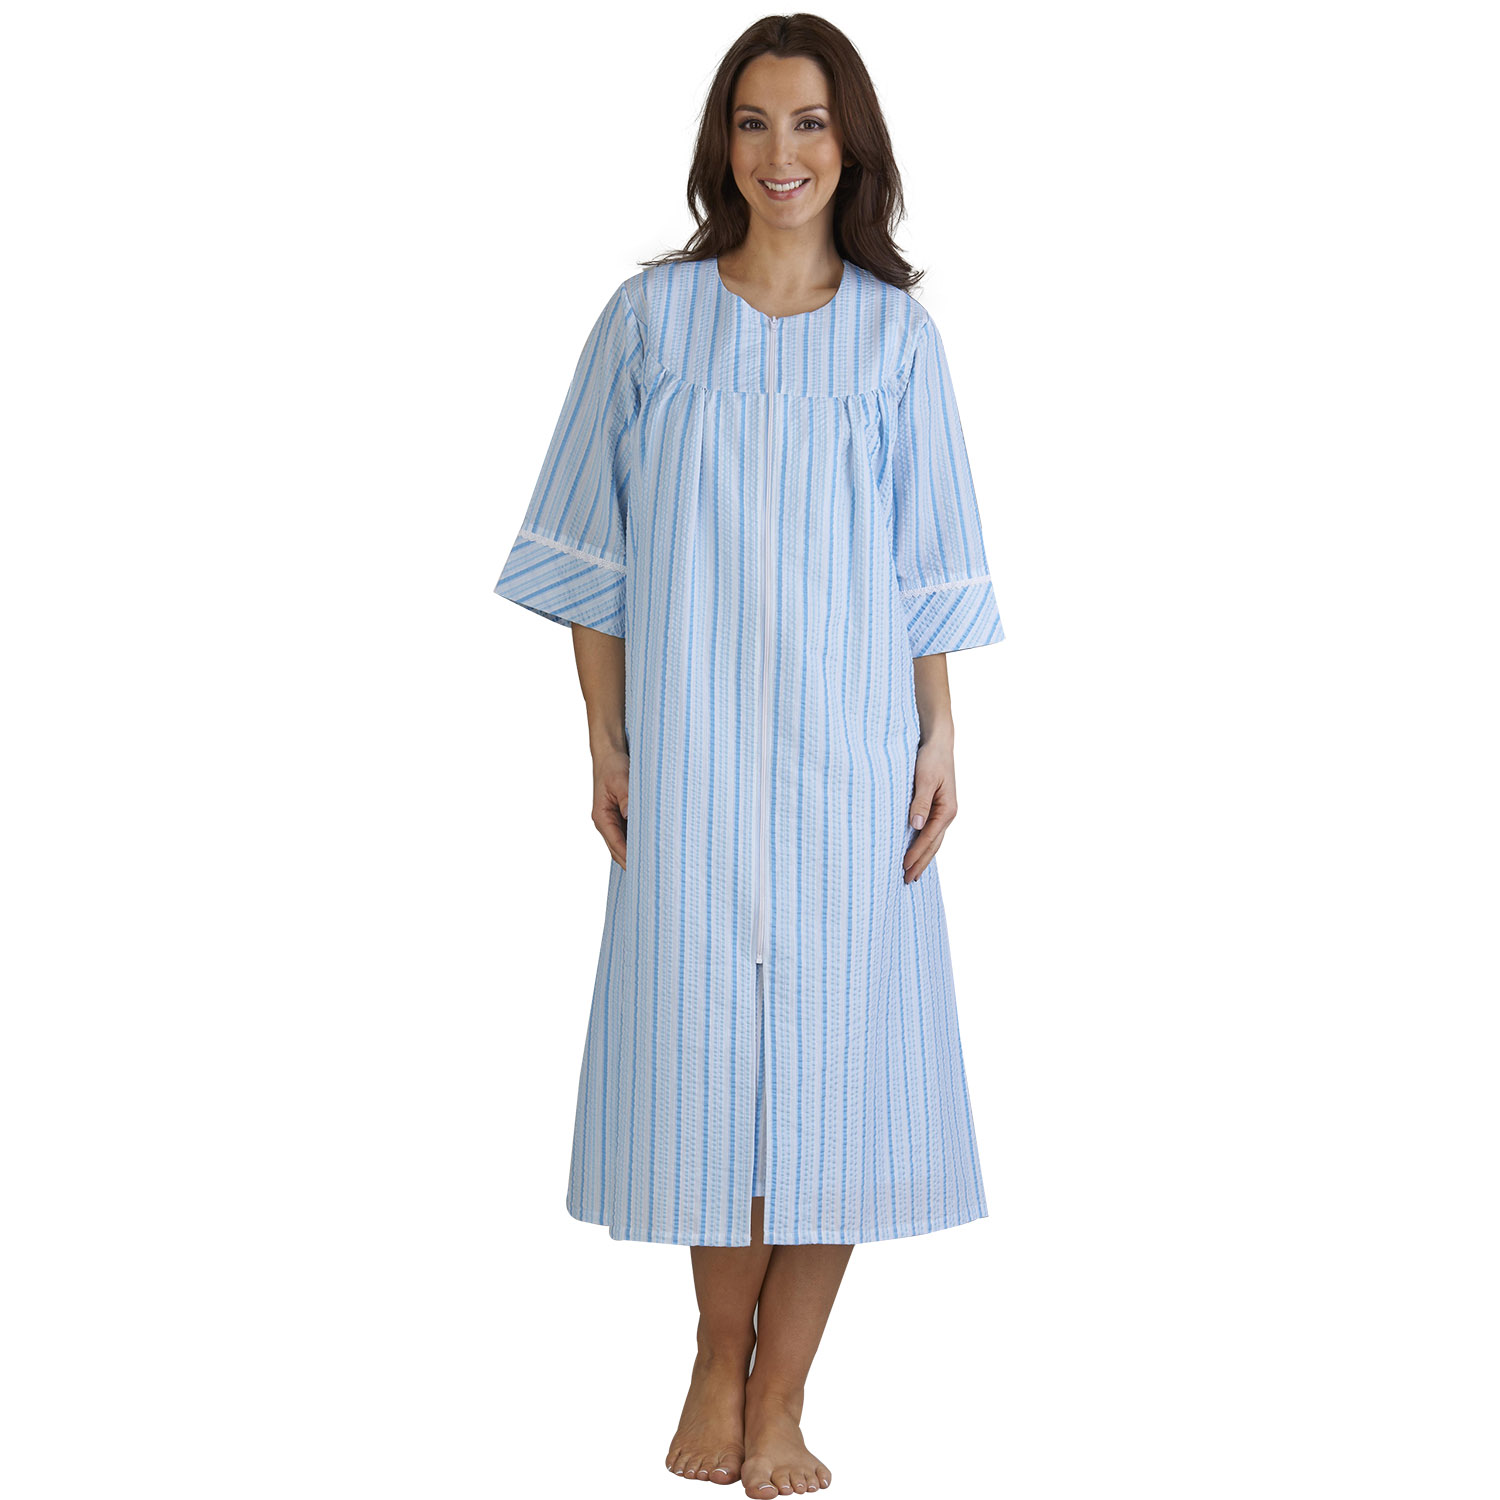 Womens Seersucker Stripe Zip Up Bathrobe Slenderella ...